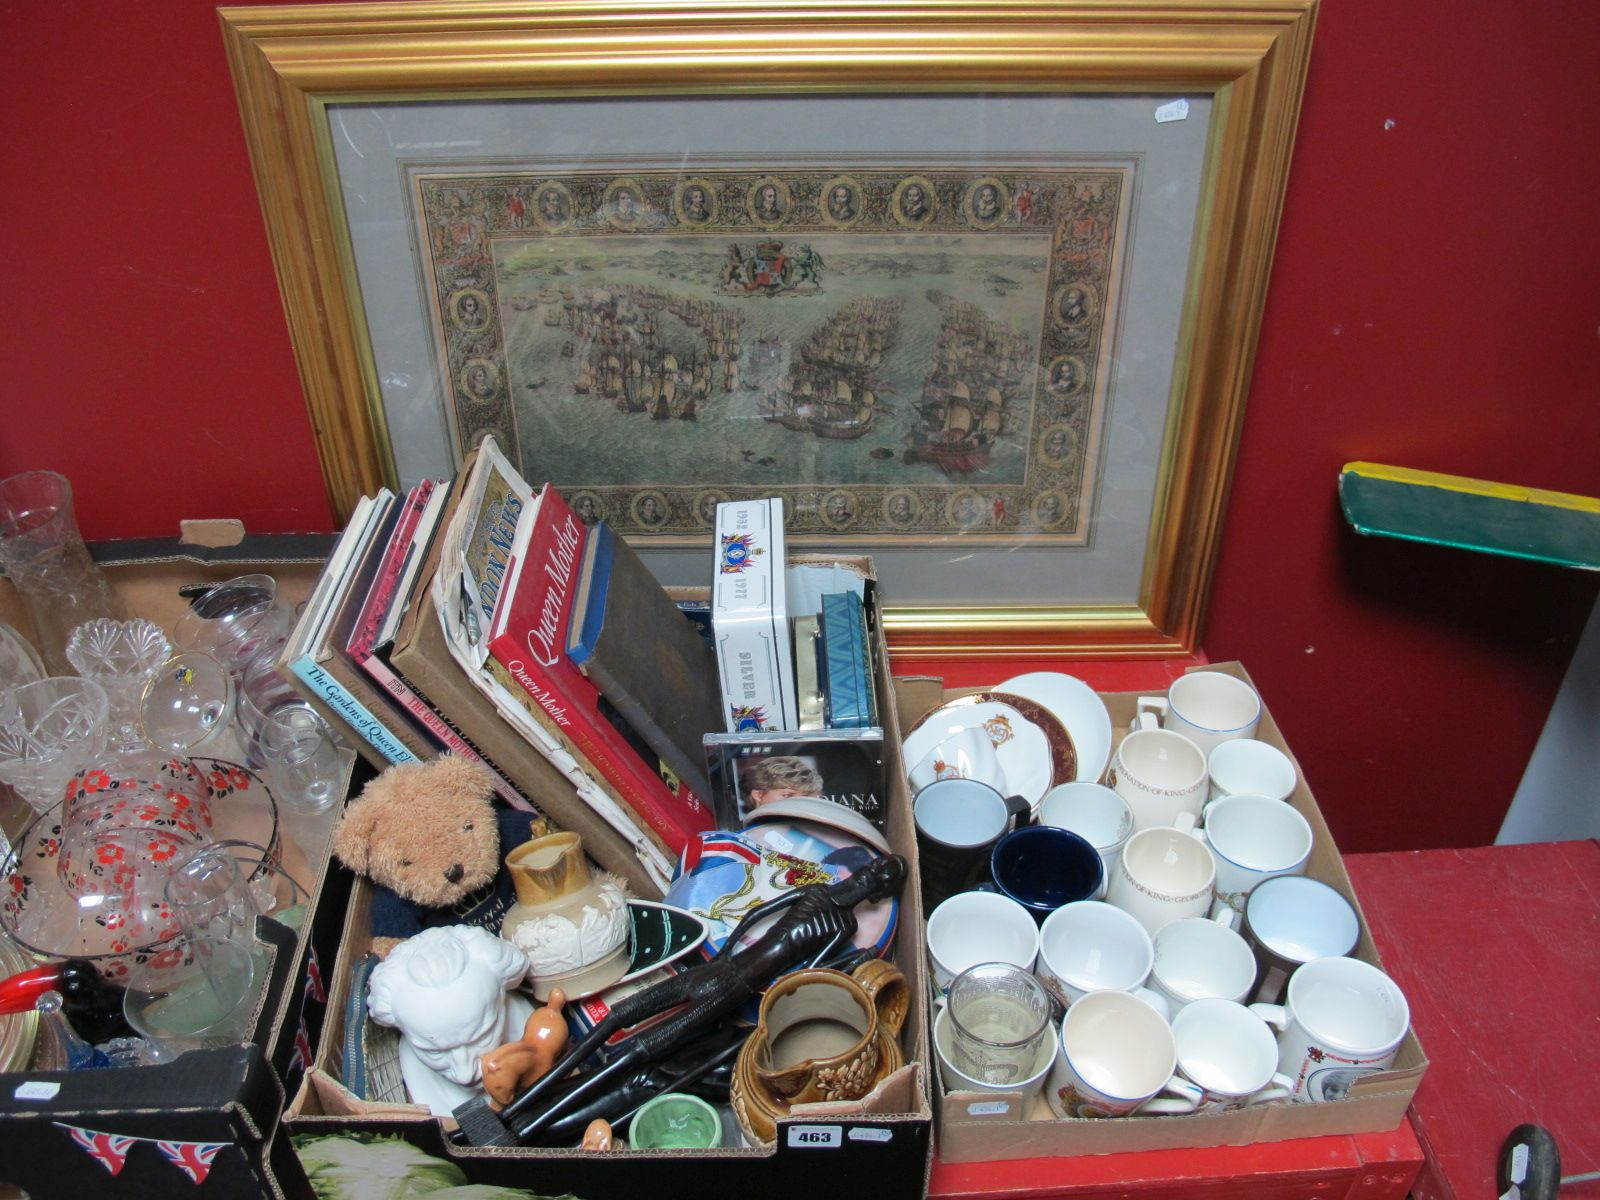 Lot 463 - Royal Commemorative Cups and Saucers, mugs, storage tins, newspapers, books, CD etc; together with